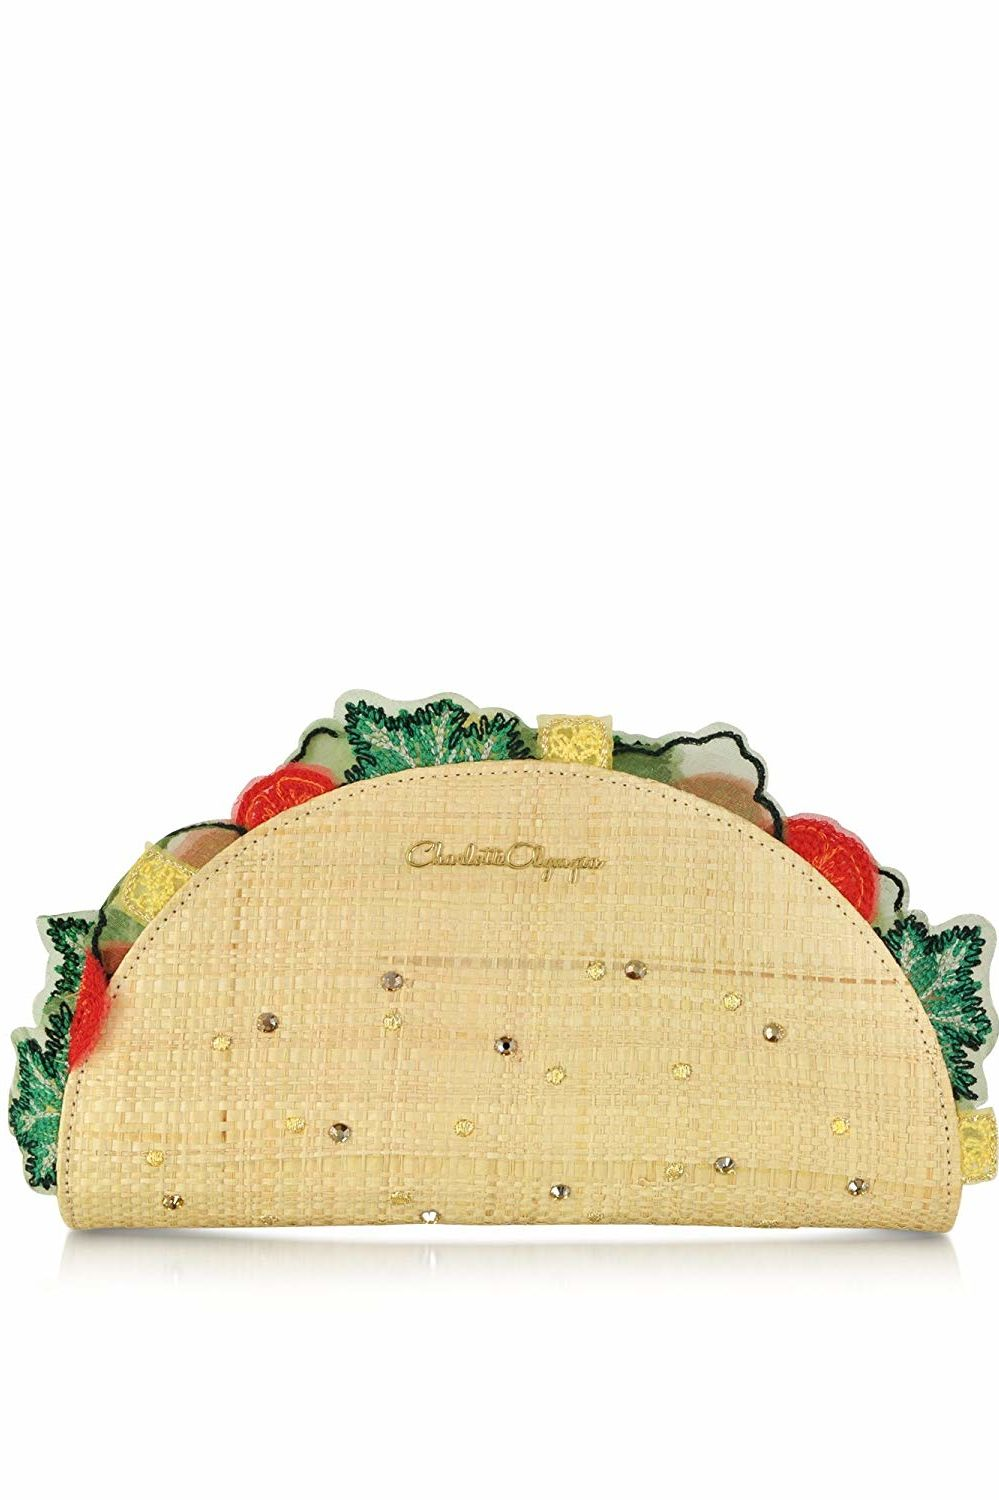 Charlotte Olympia Taqueria Clutch 2 Preview Images